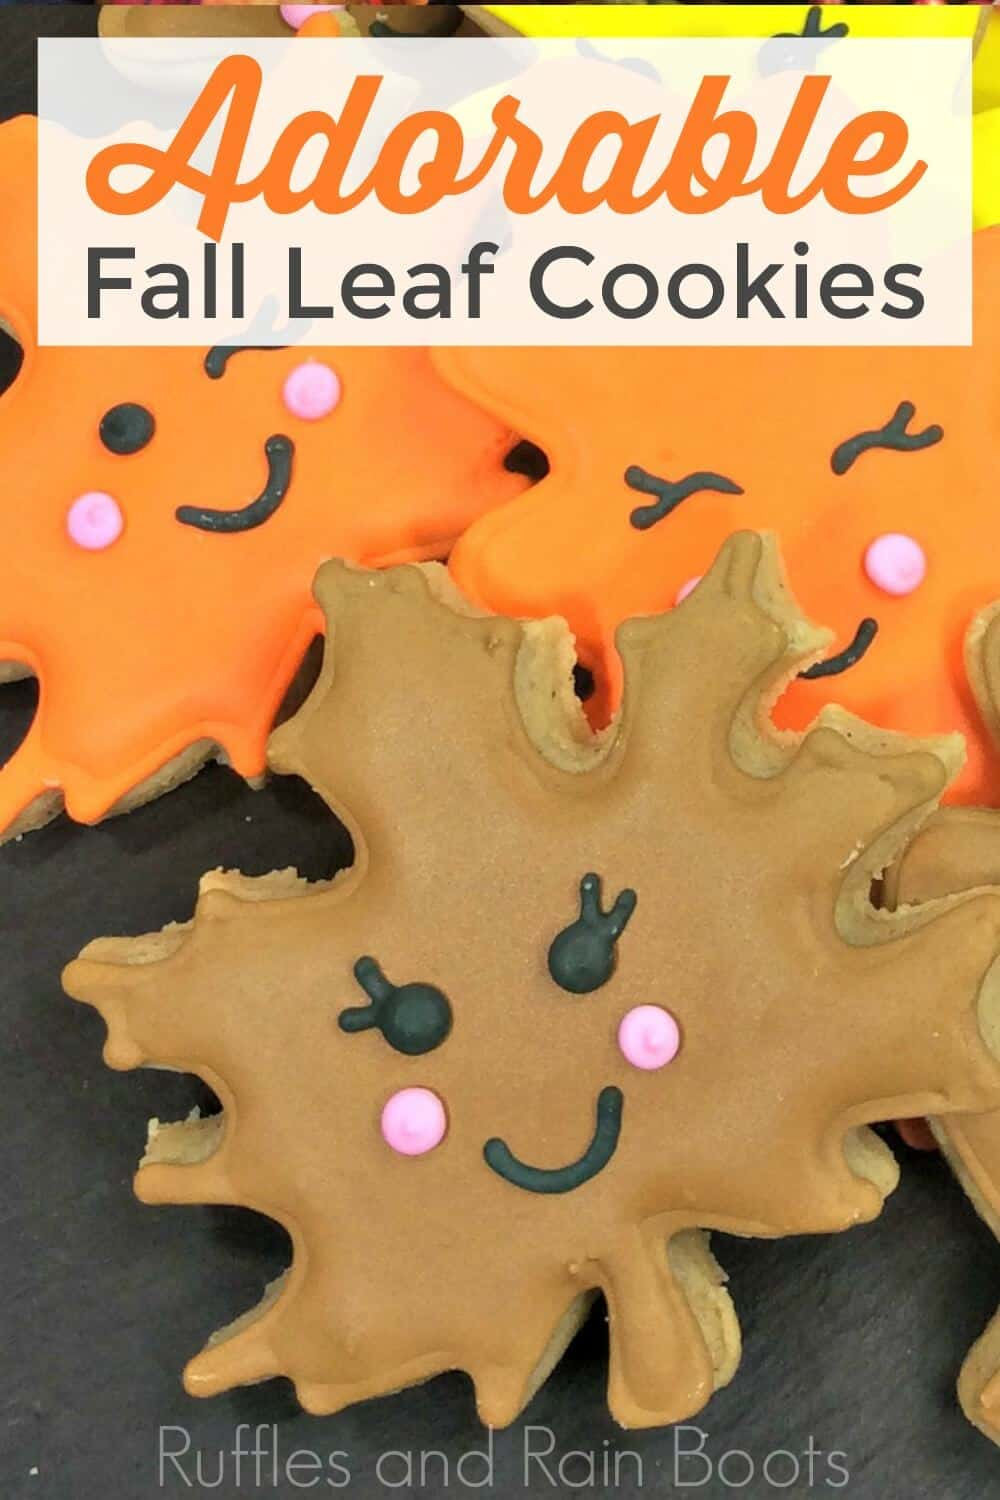 close up of fall cookies shaped like leaves with text which reads Adorable Fall Leaf Cookies